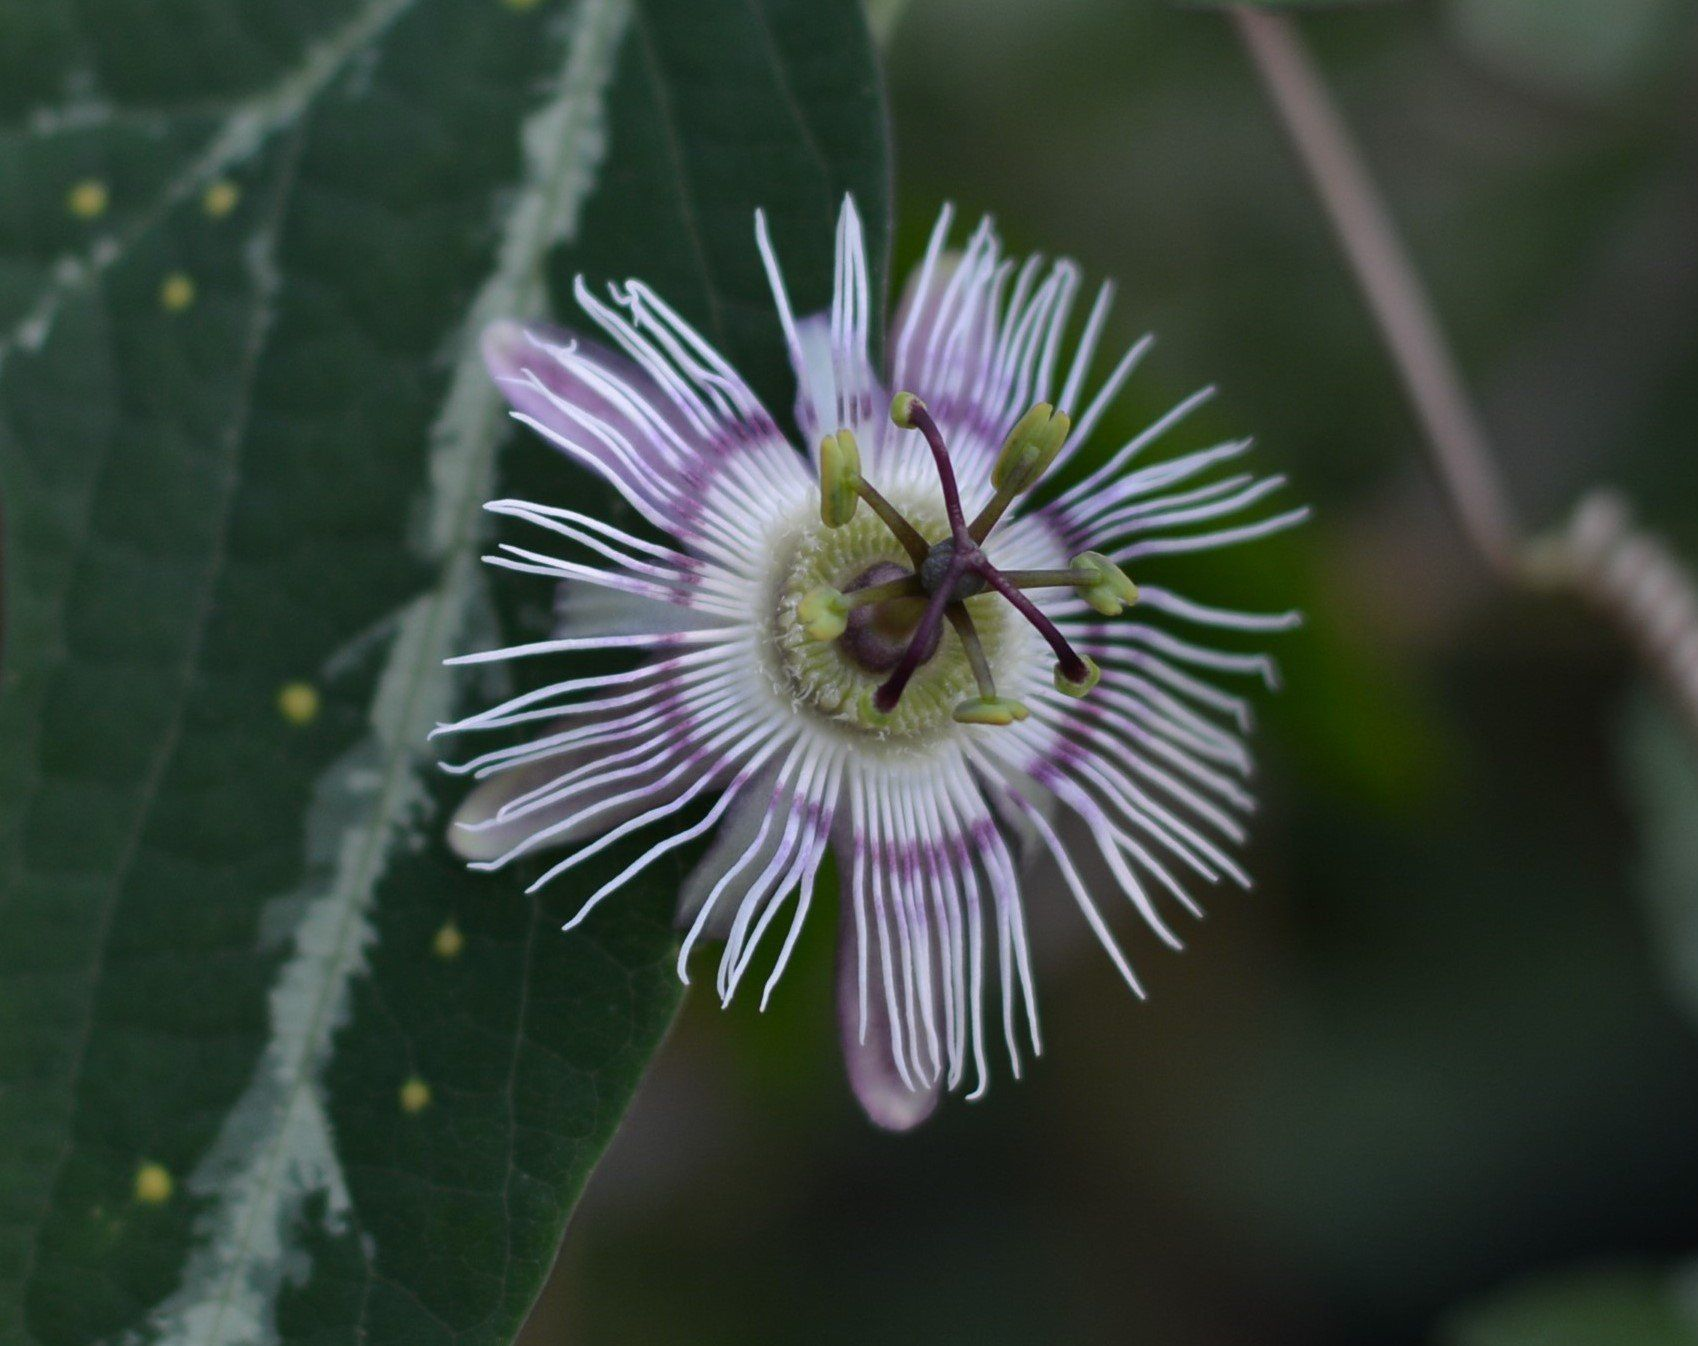 Pin By Michelle H On Passiflora O P How To Attract Hummingbirds Yellow Flowers Plants